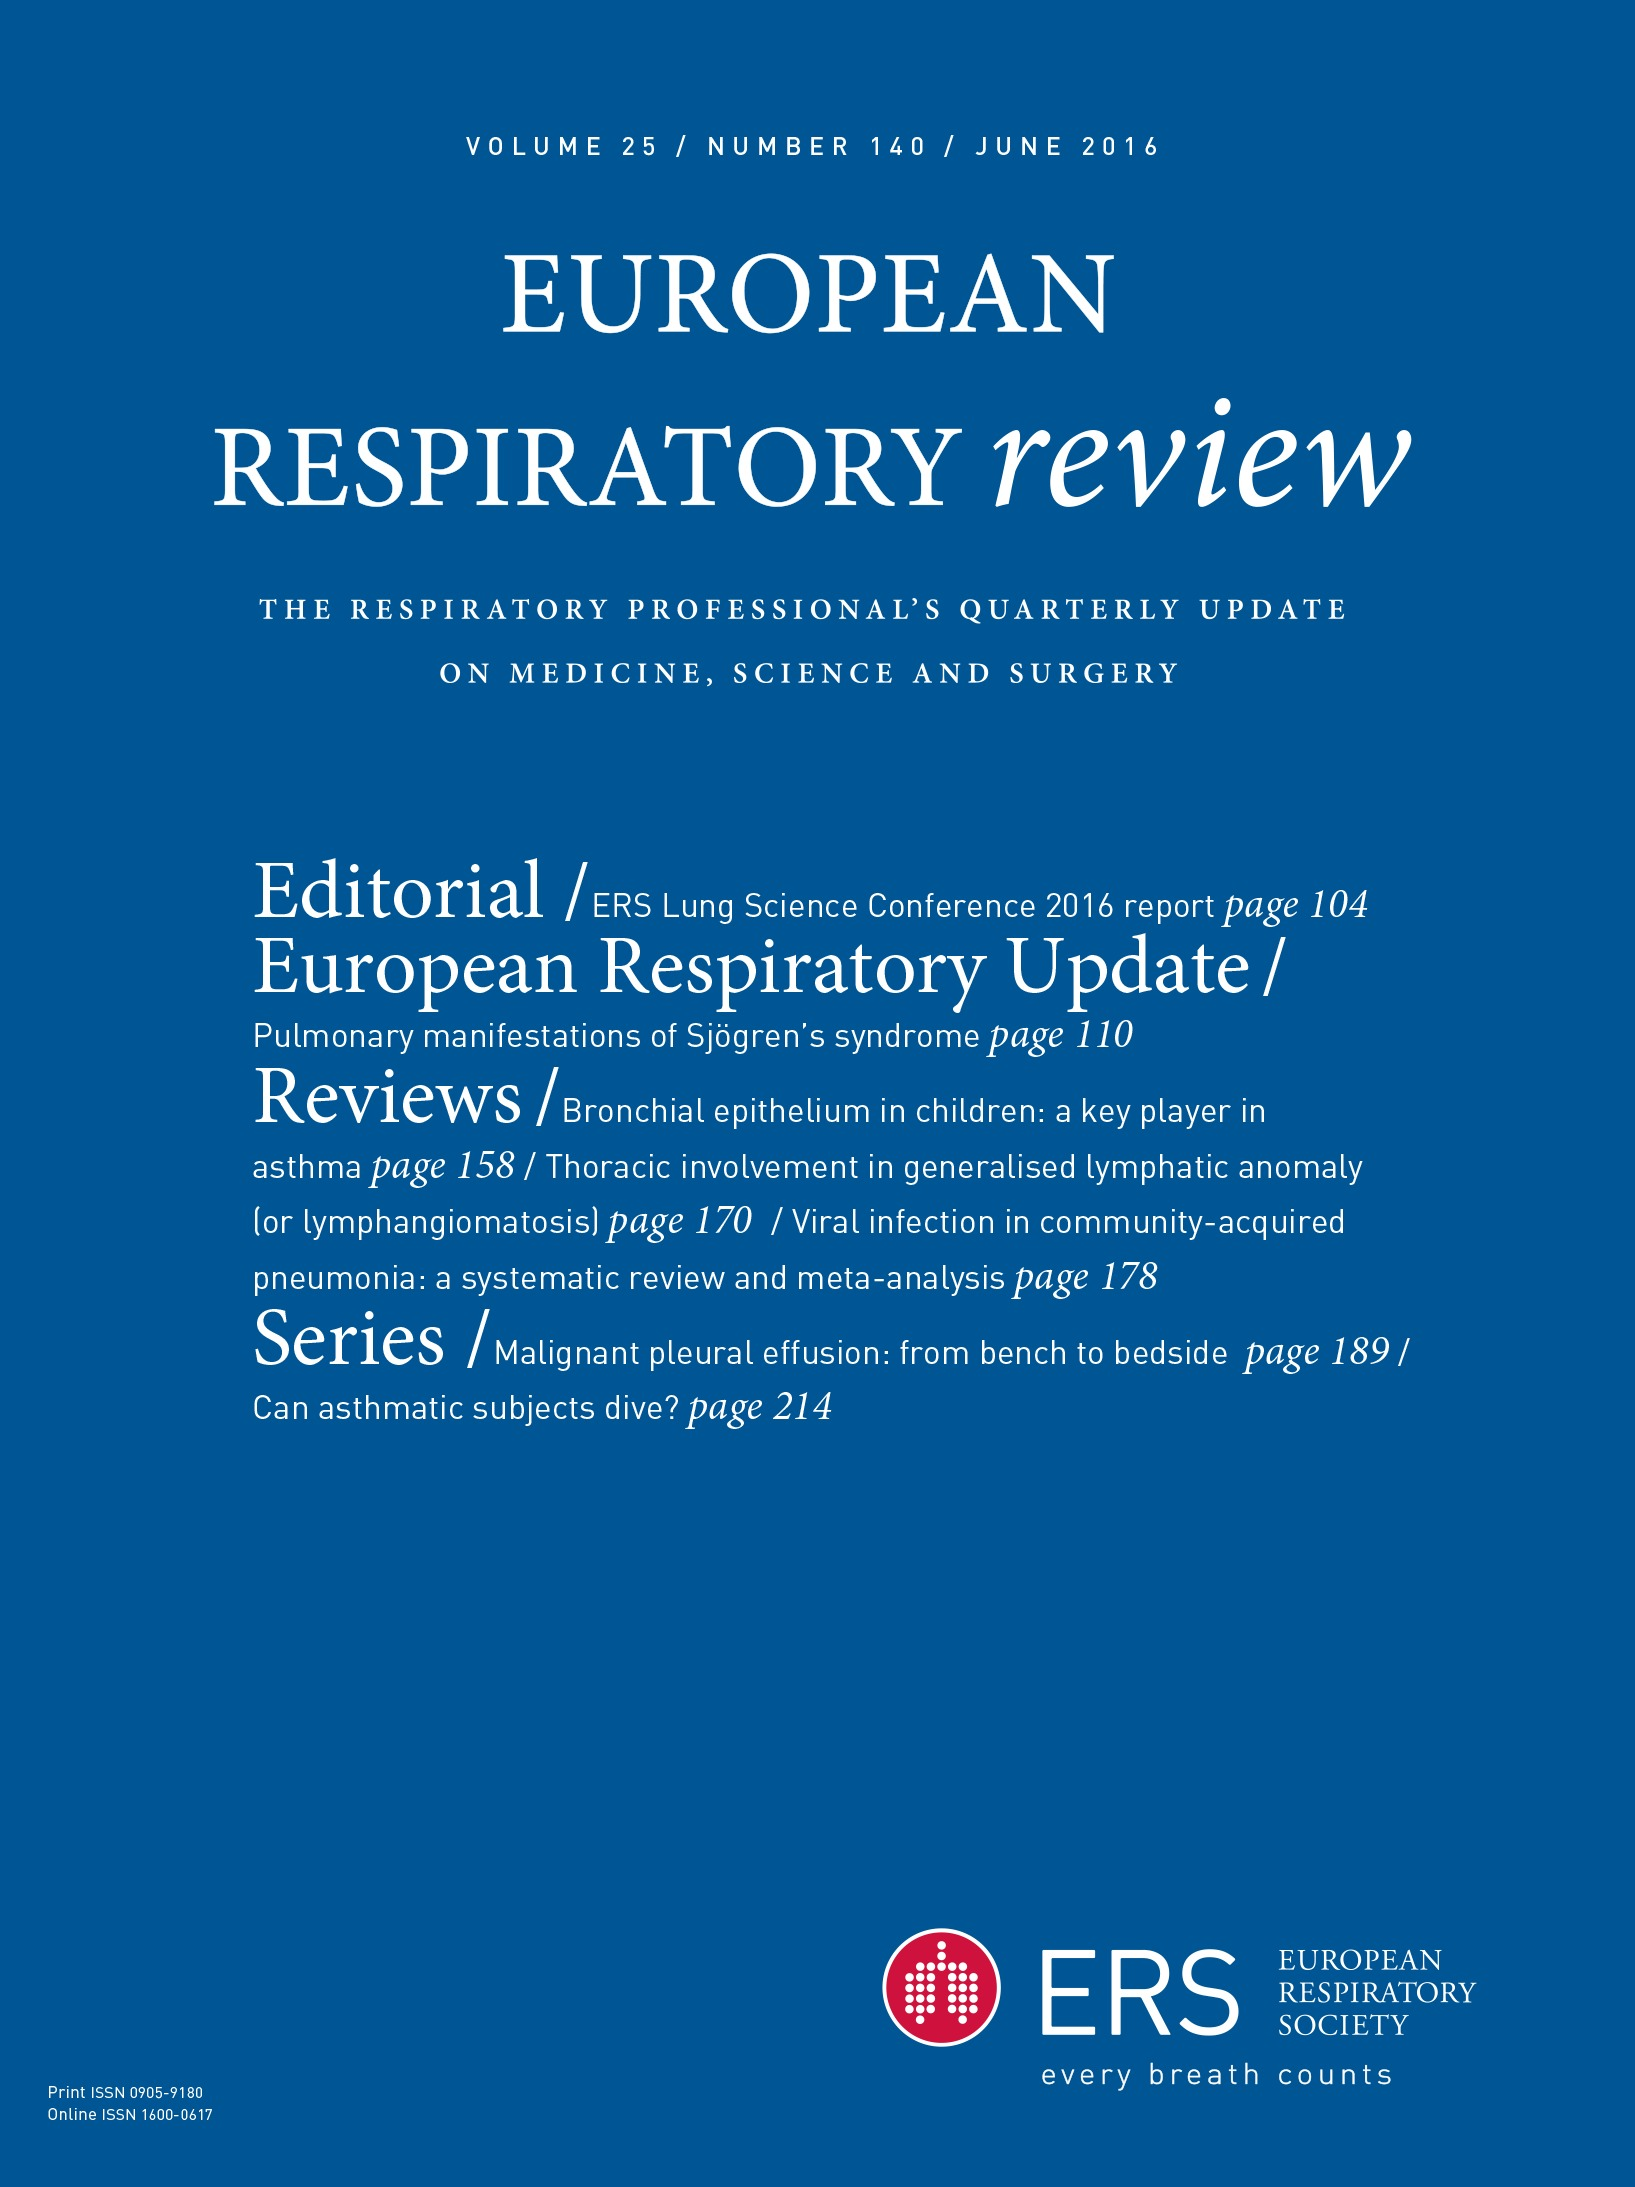 Management of sarcoidosis in clinical practice | European